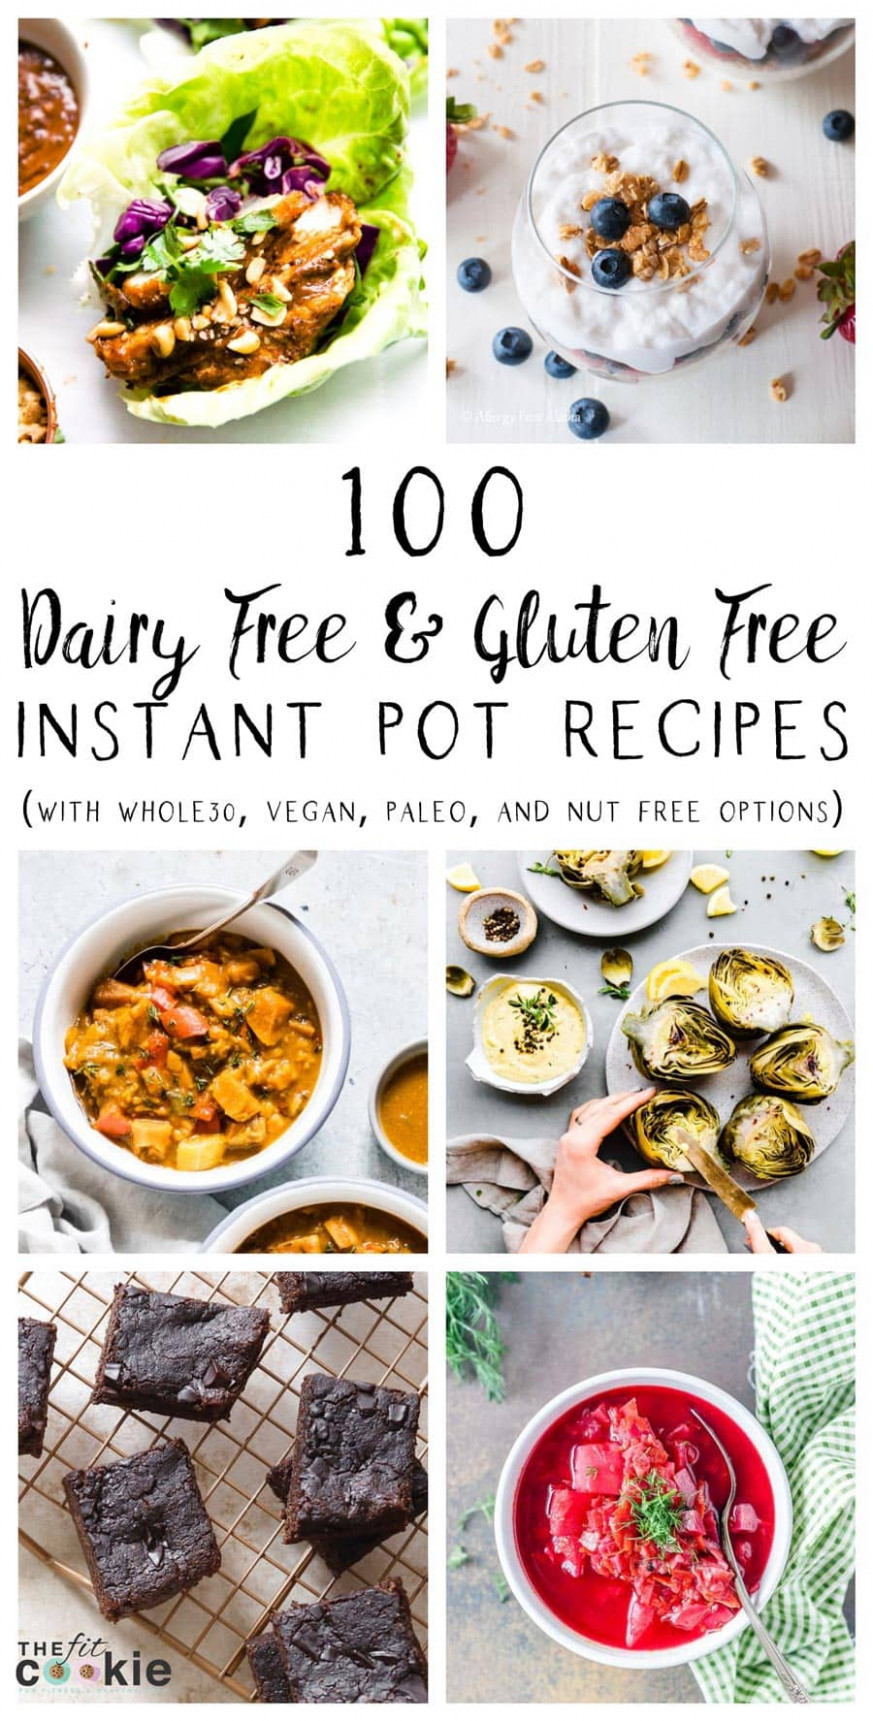 10 Dairy Free And Gluten Free Instant Pot Recipes • The Fit ..